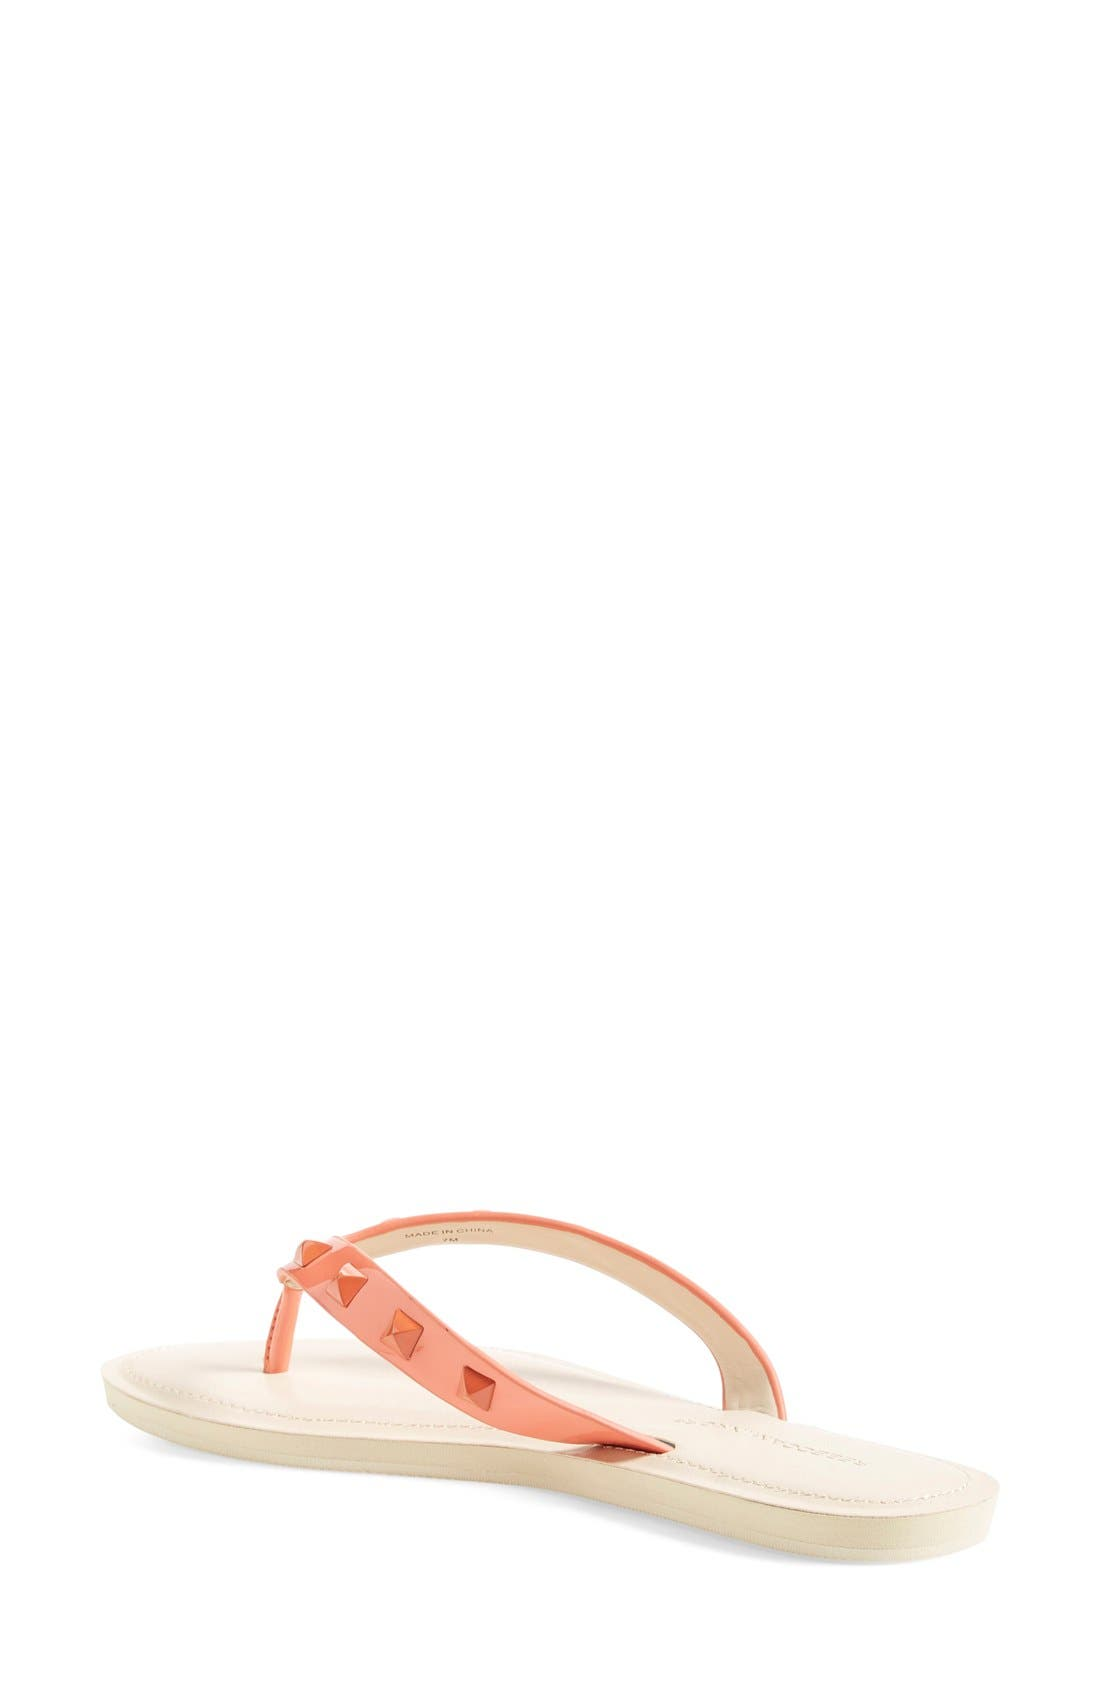 Alternate Image 2  - Rebecca Minkoff 'Fiona' Thong Sandal (Women)